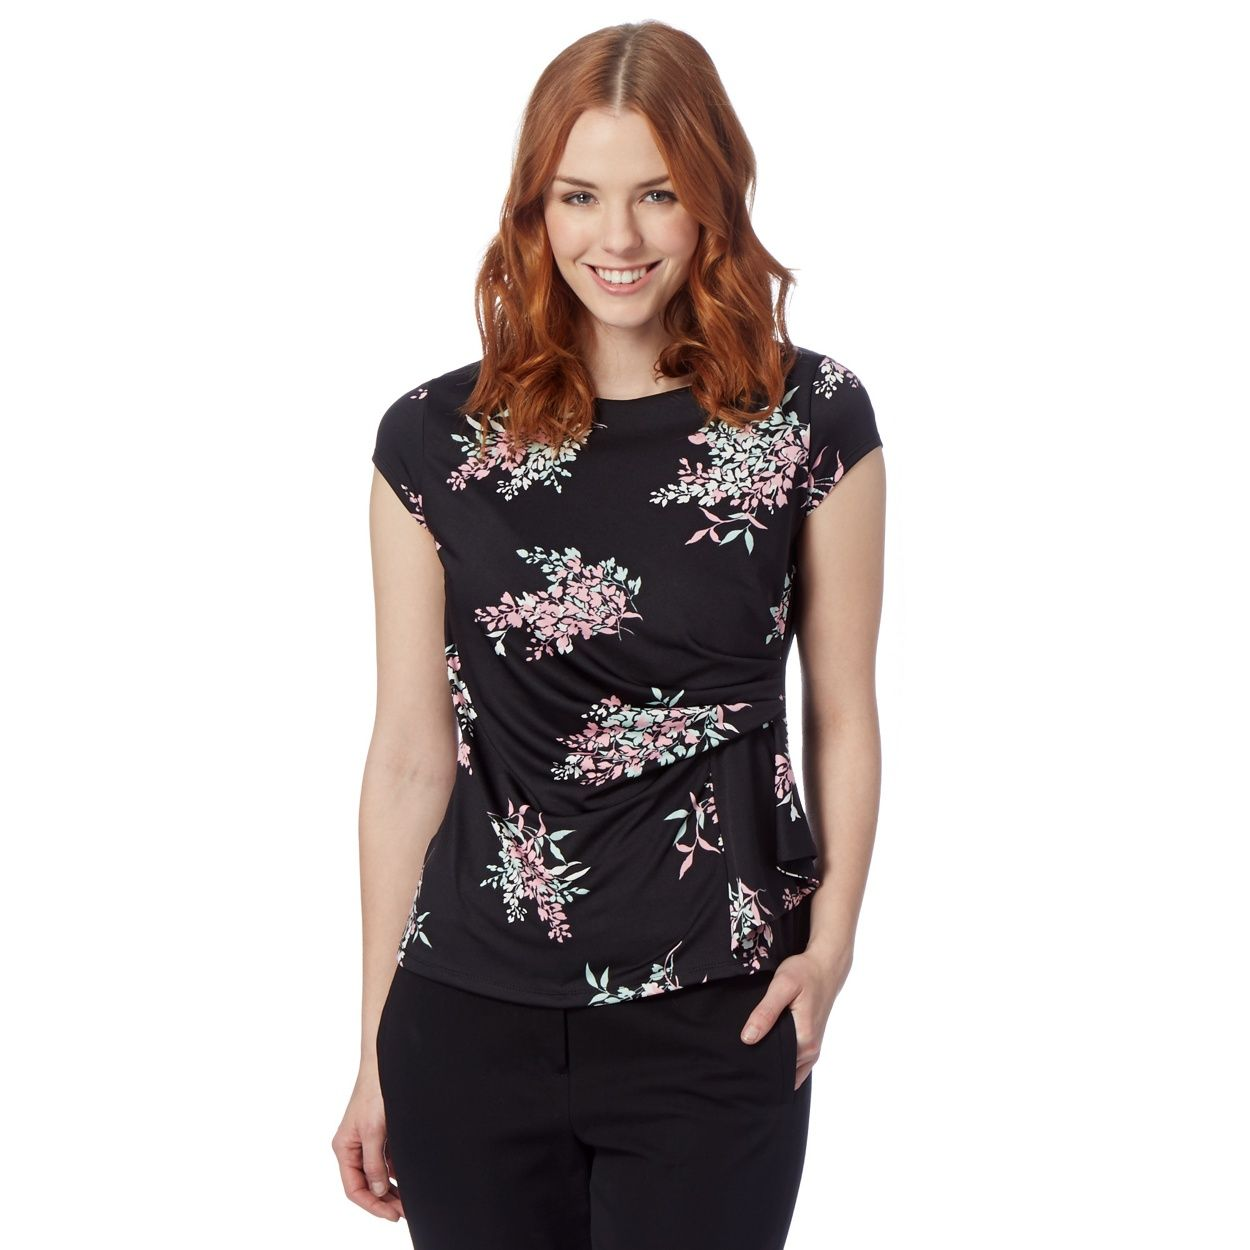 run shoes super cute reasonably priced The Collection Petite Petite black cherry blossom jersey top- at ...